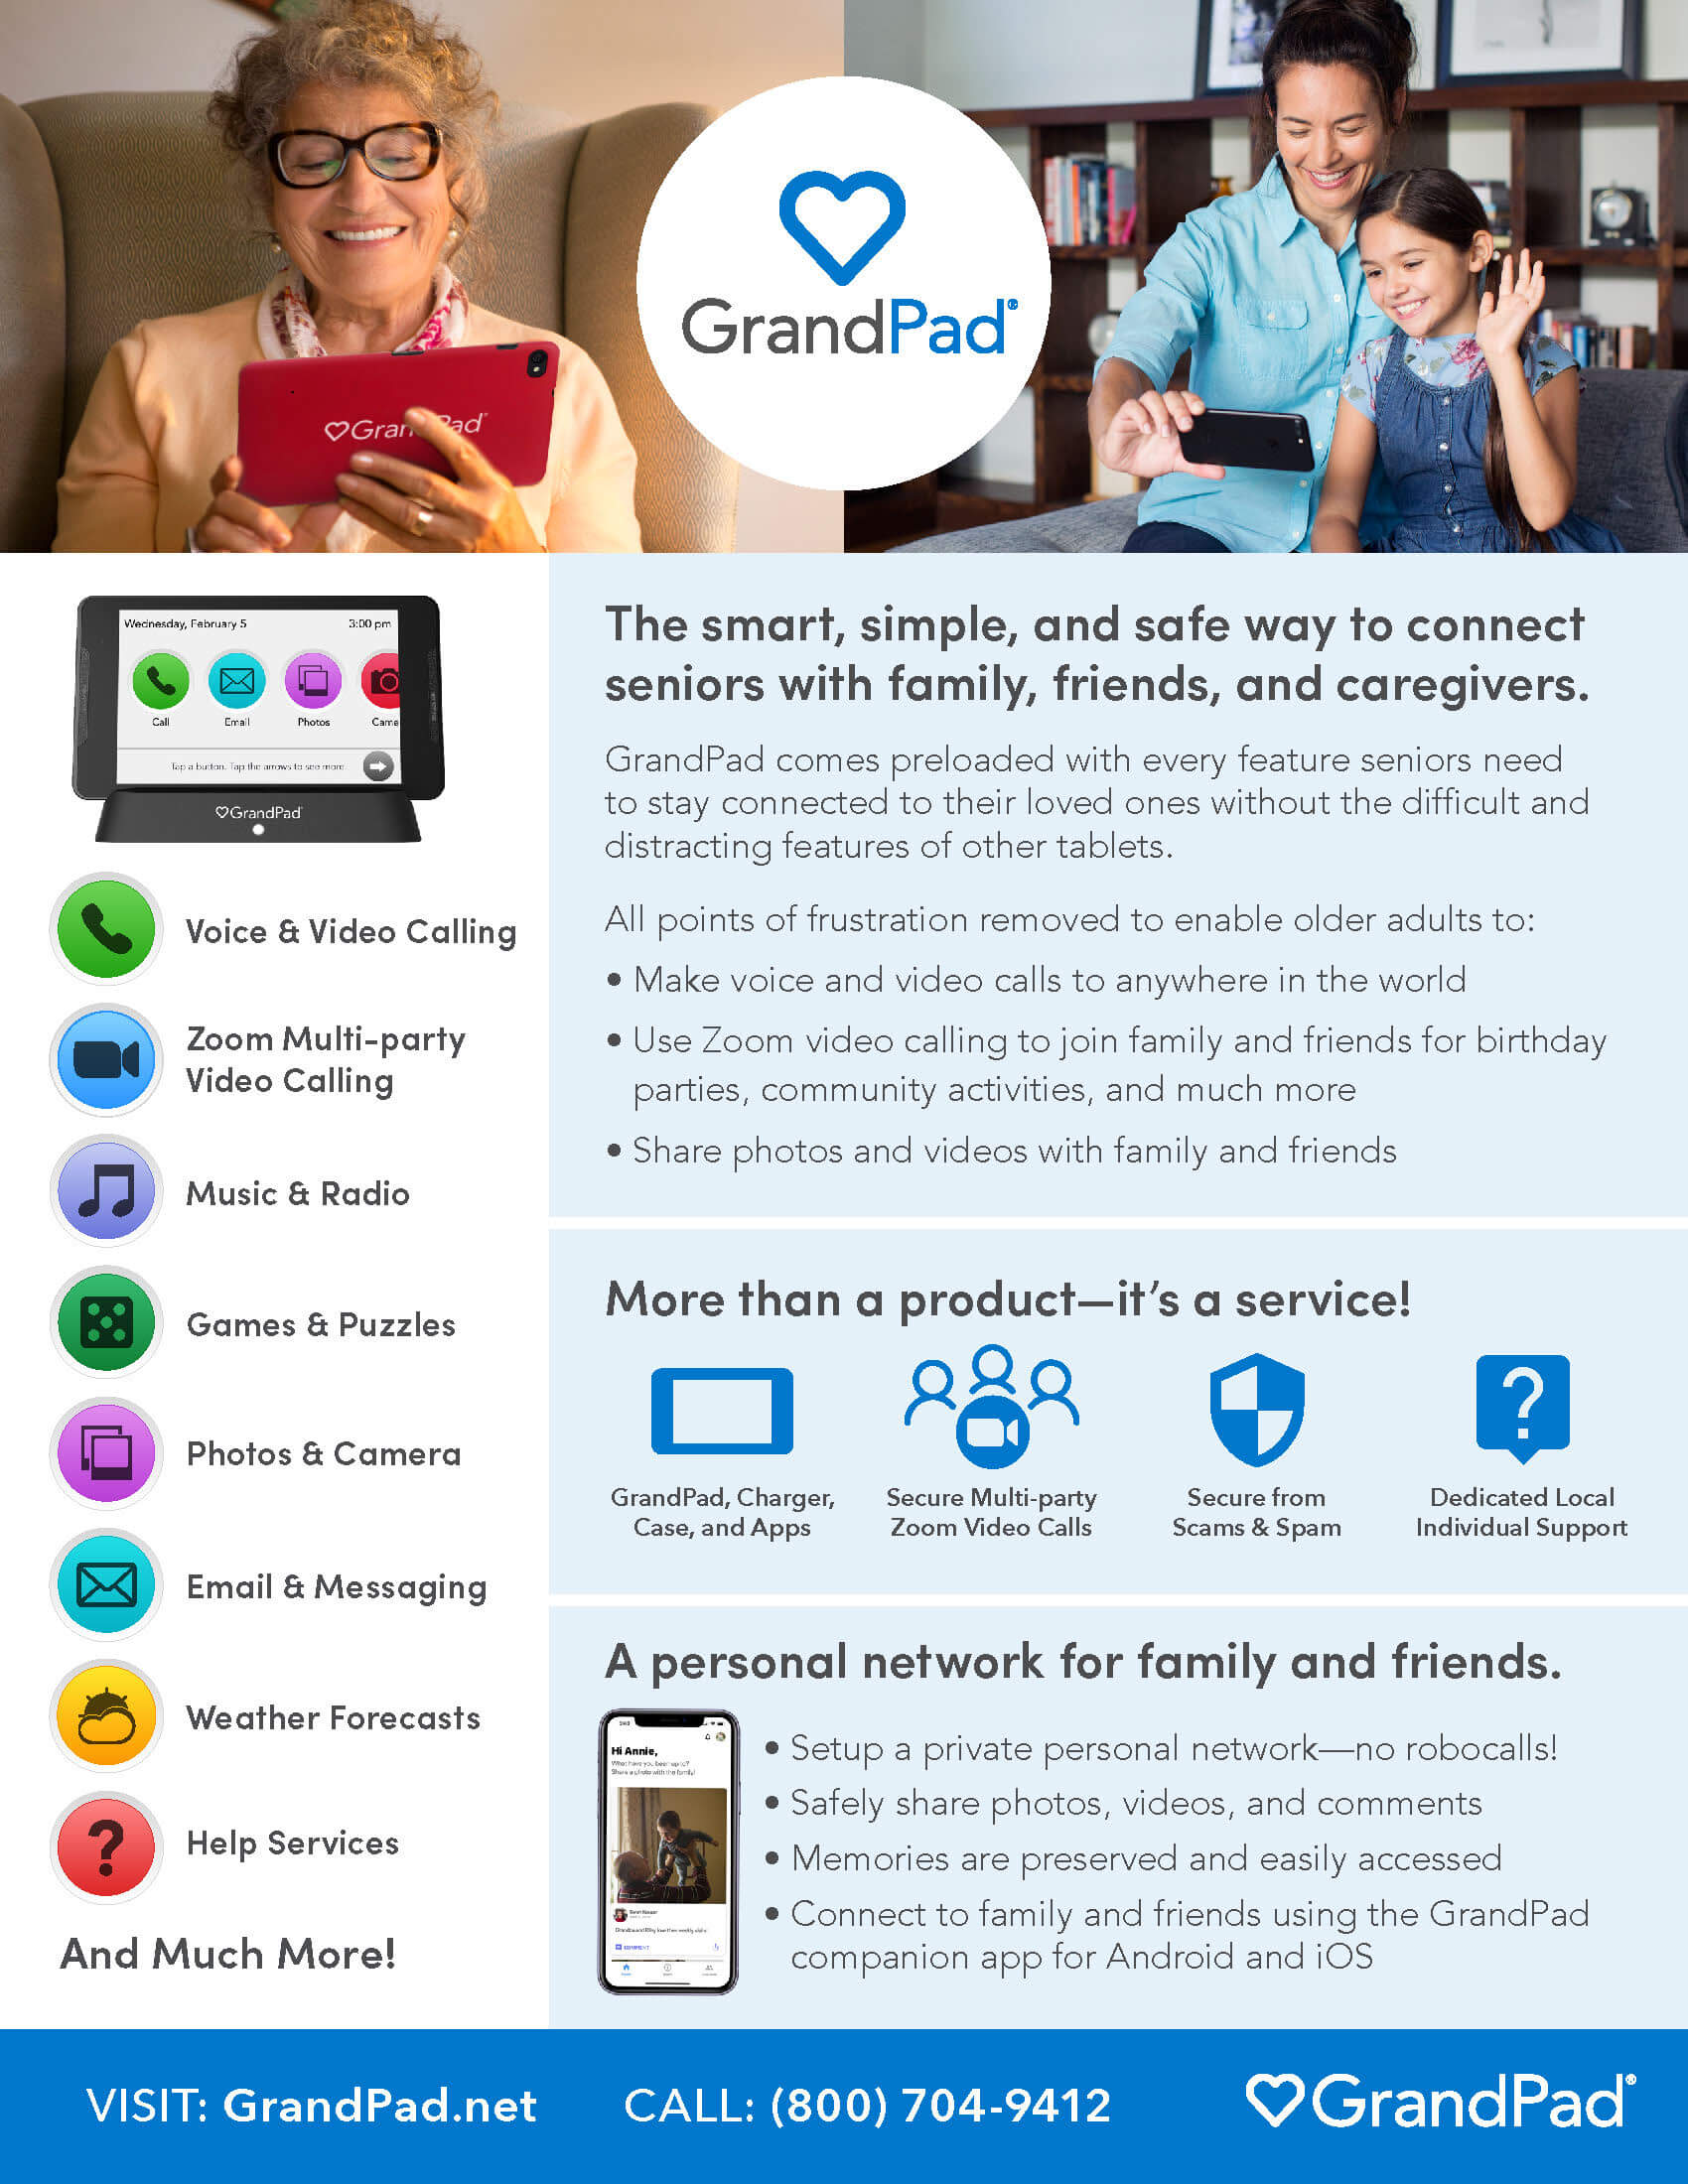 GrandPad Overview Flyer